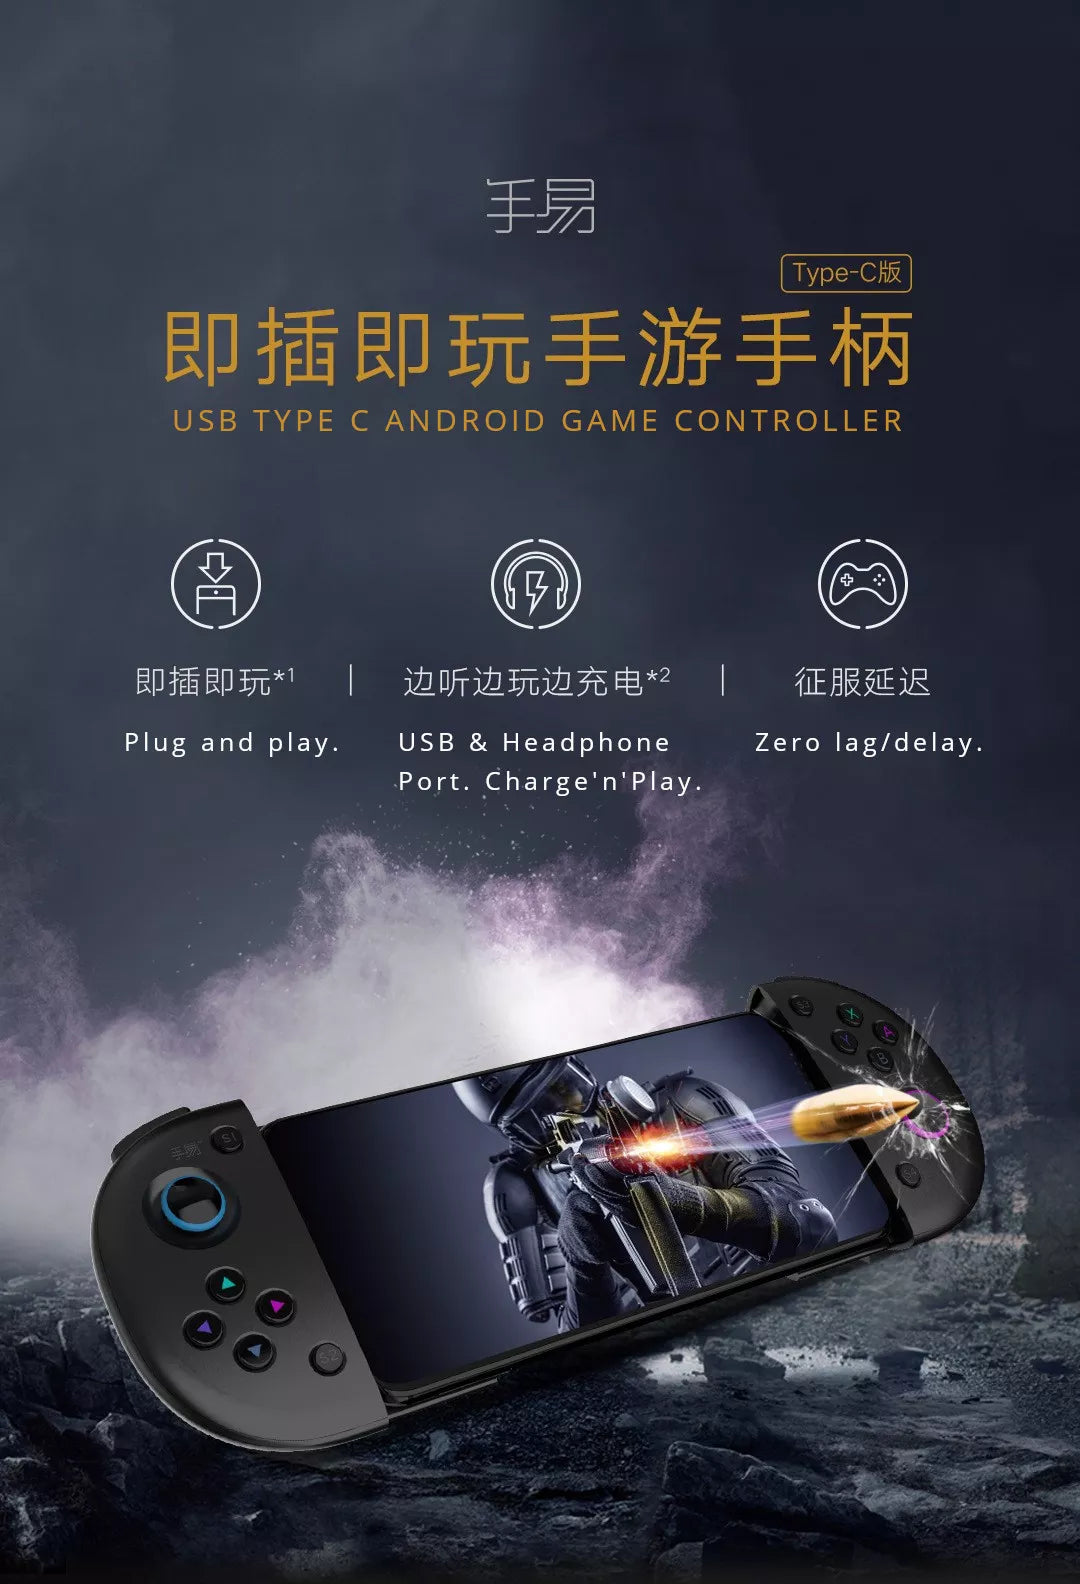 Game Controller/Holder for USB-C Android Phone. Direct Connection Android Gaming buy today at nseimports.co.uk